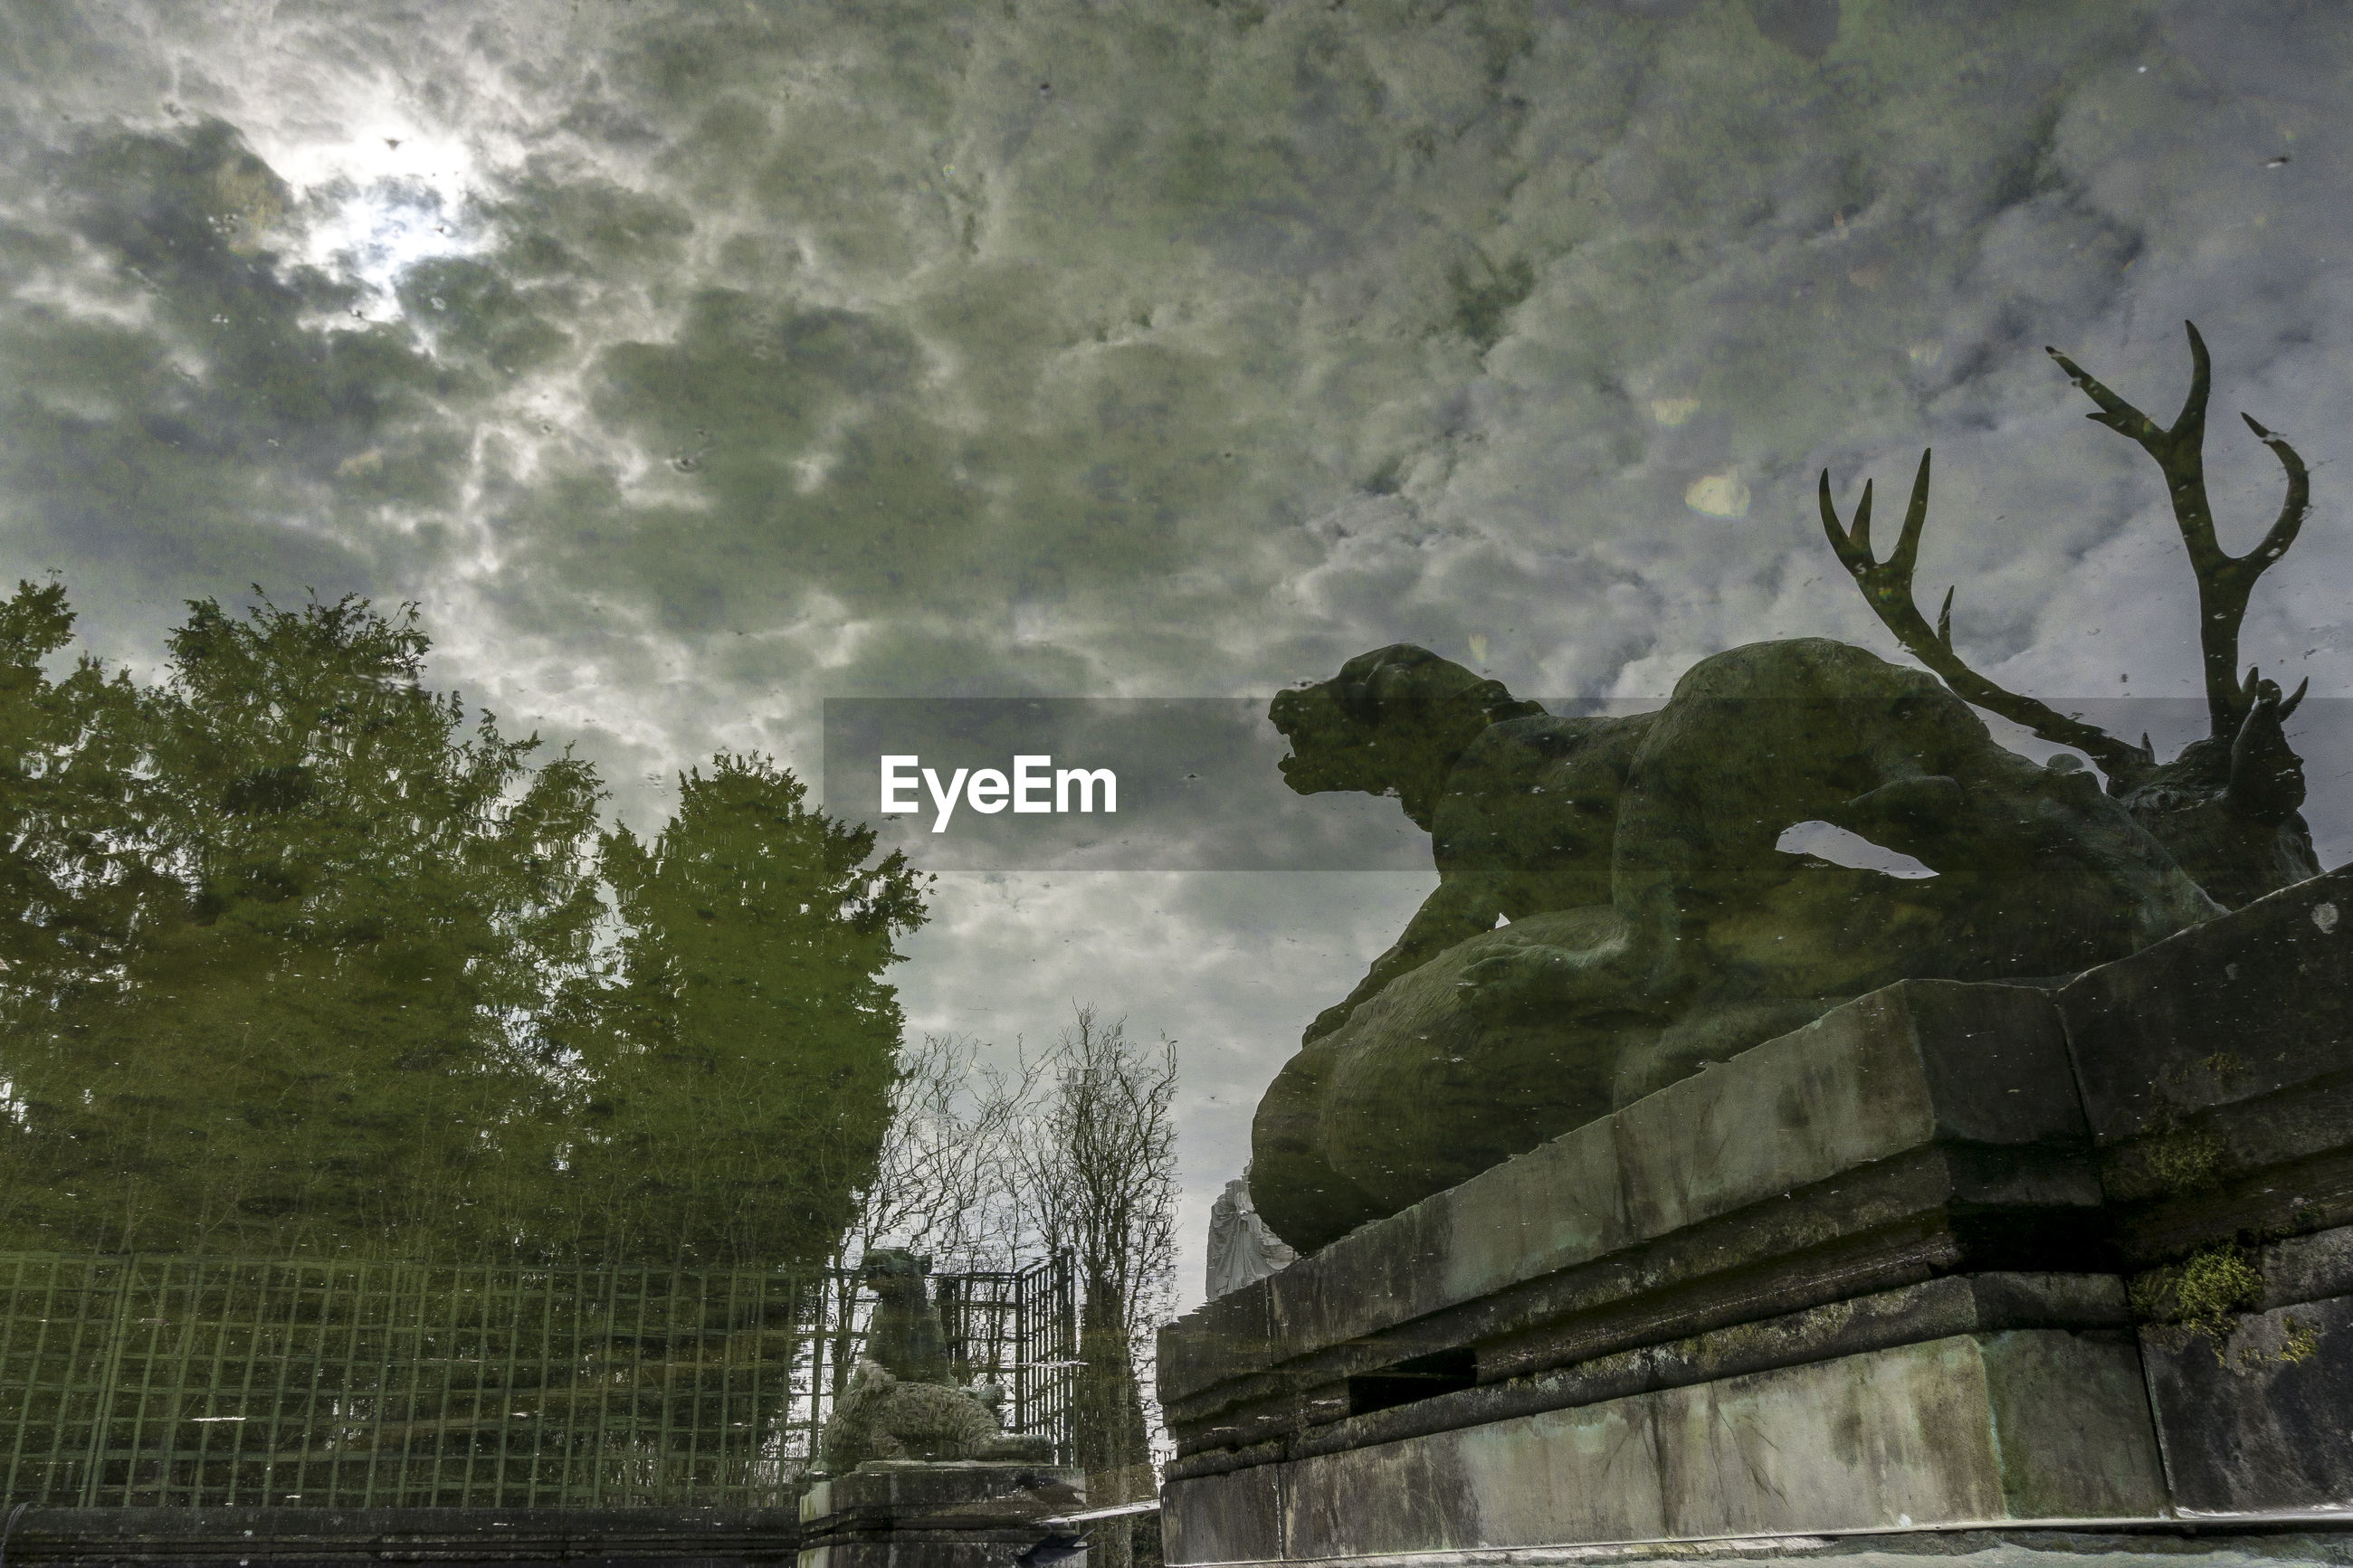 Reflection of statue against cloudy sky in water